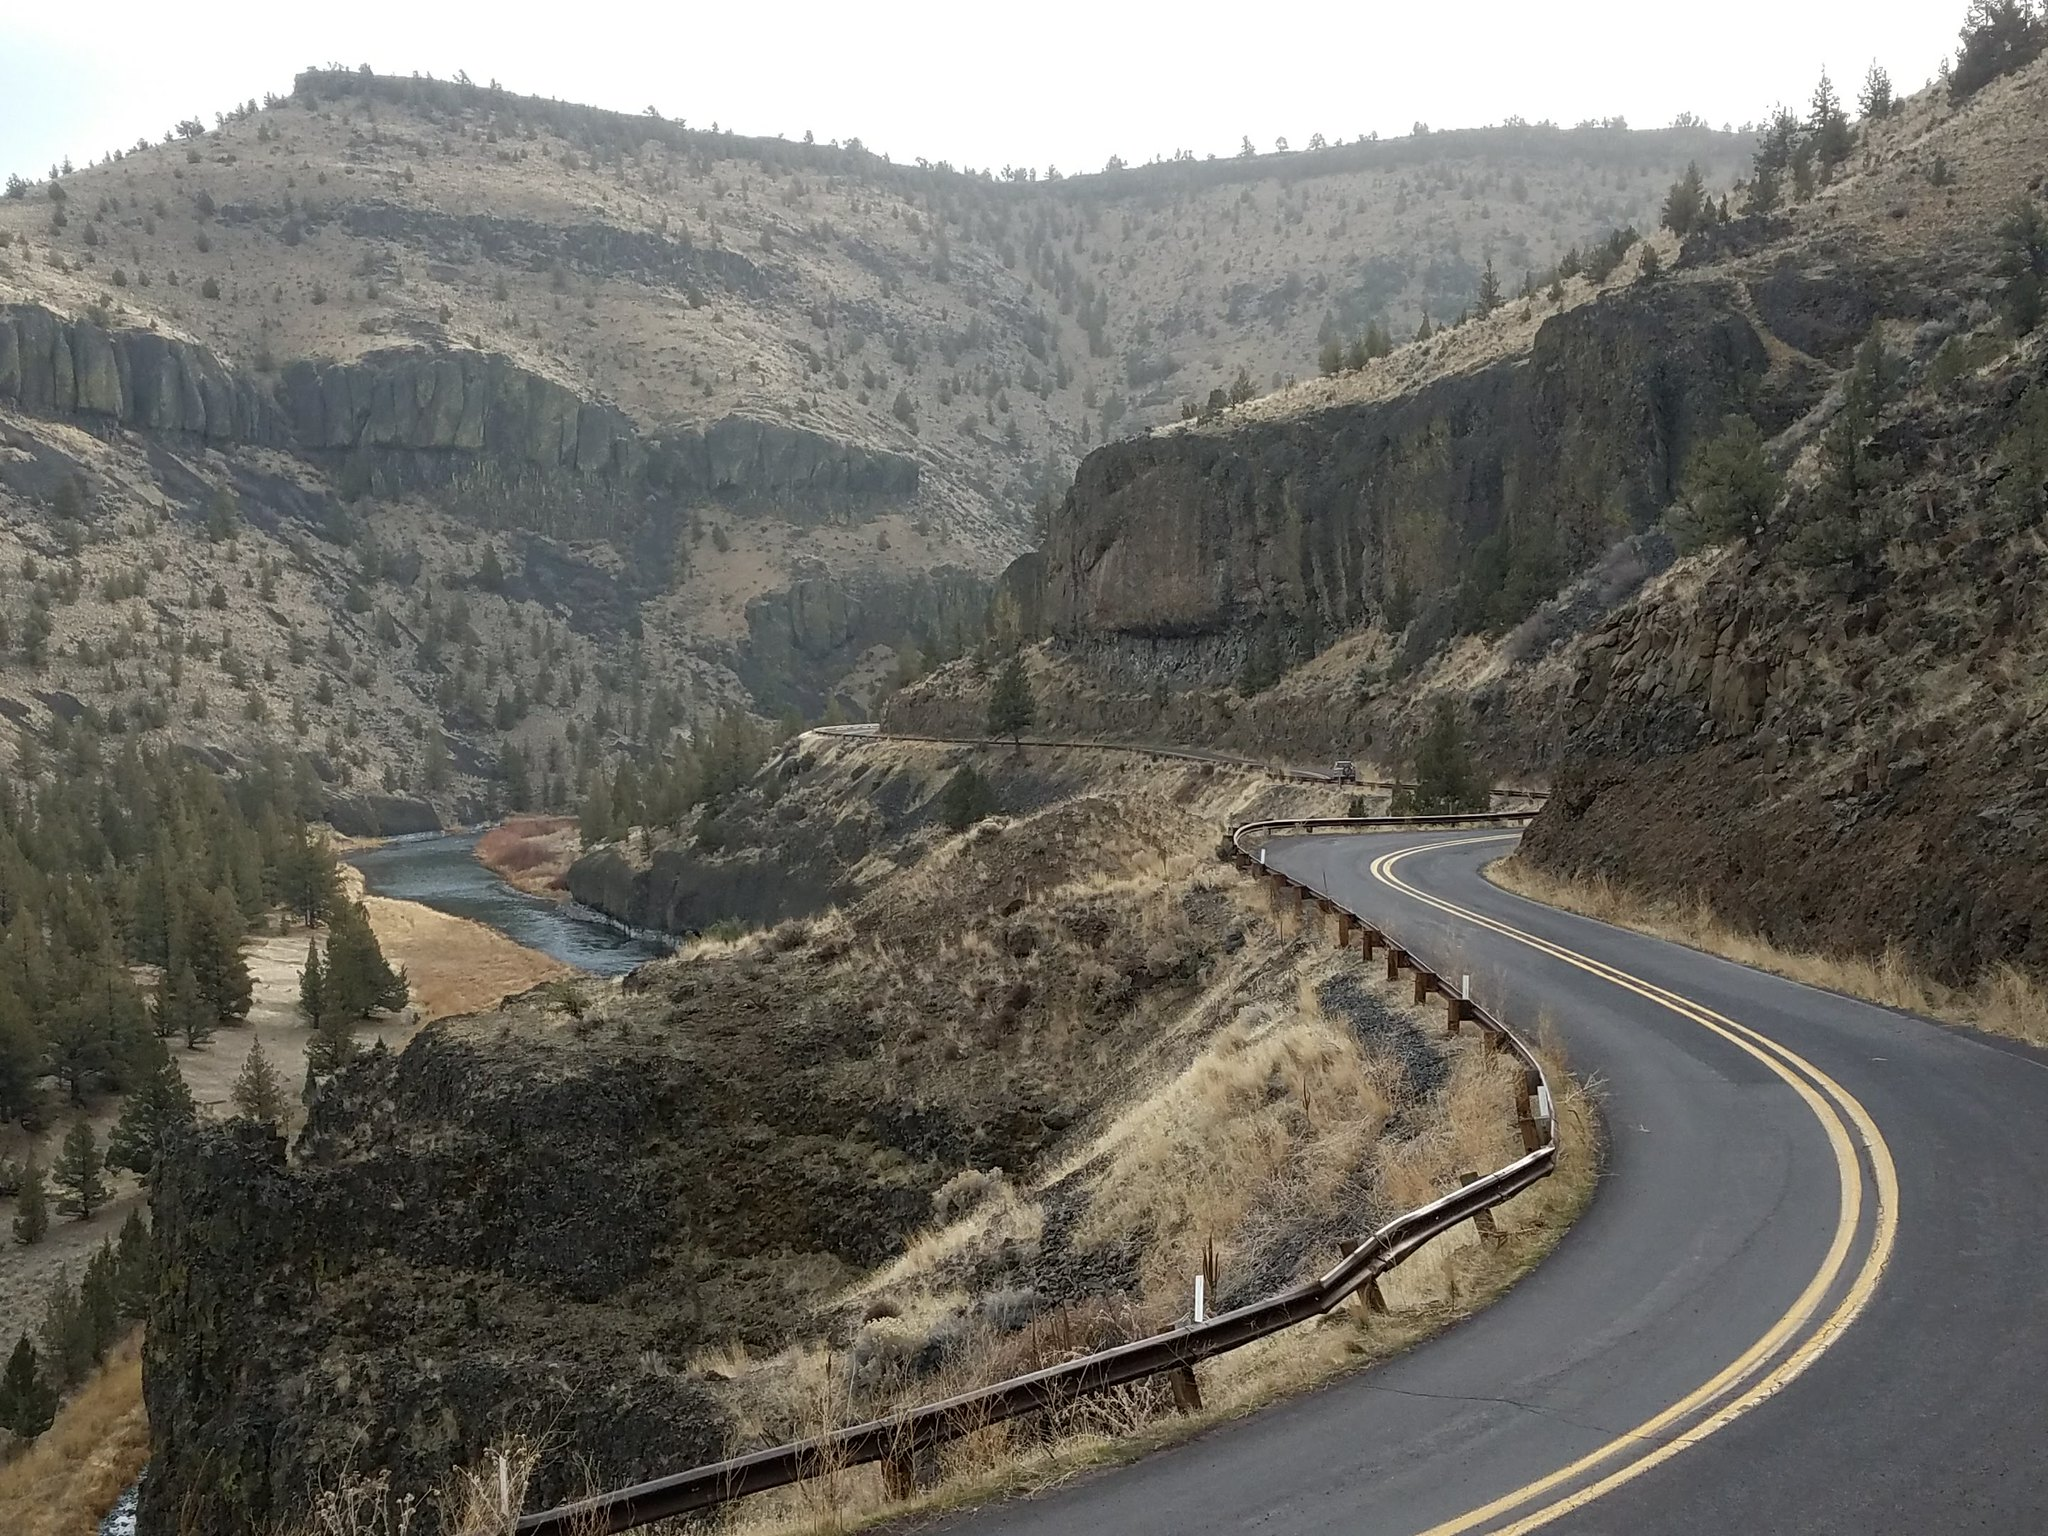 Winding Lower Crooked River Back Country Byway with the Crooked River